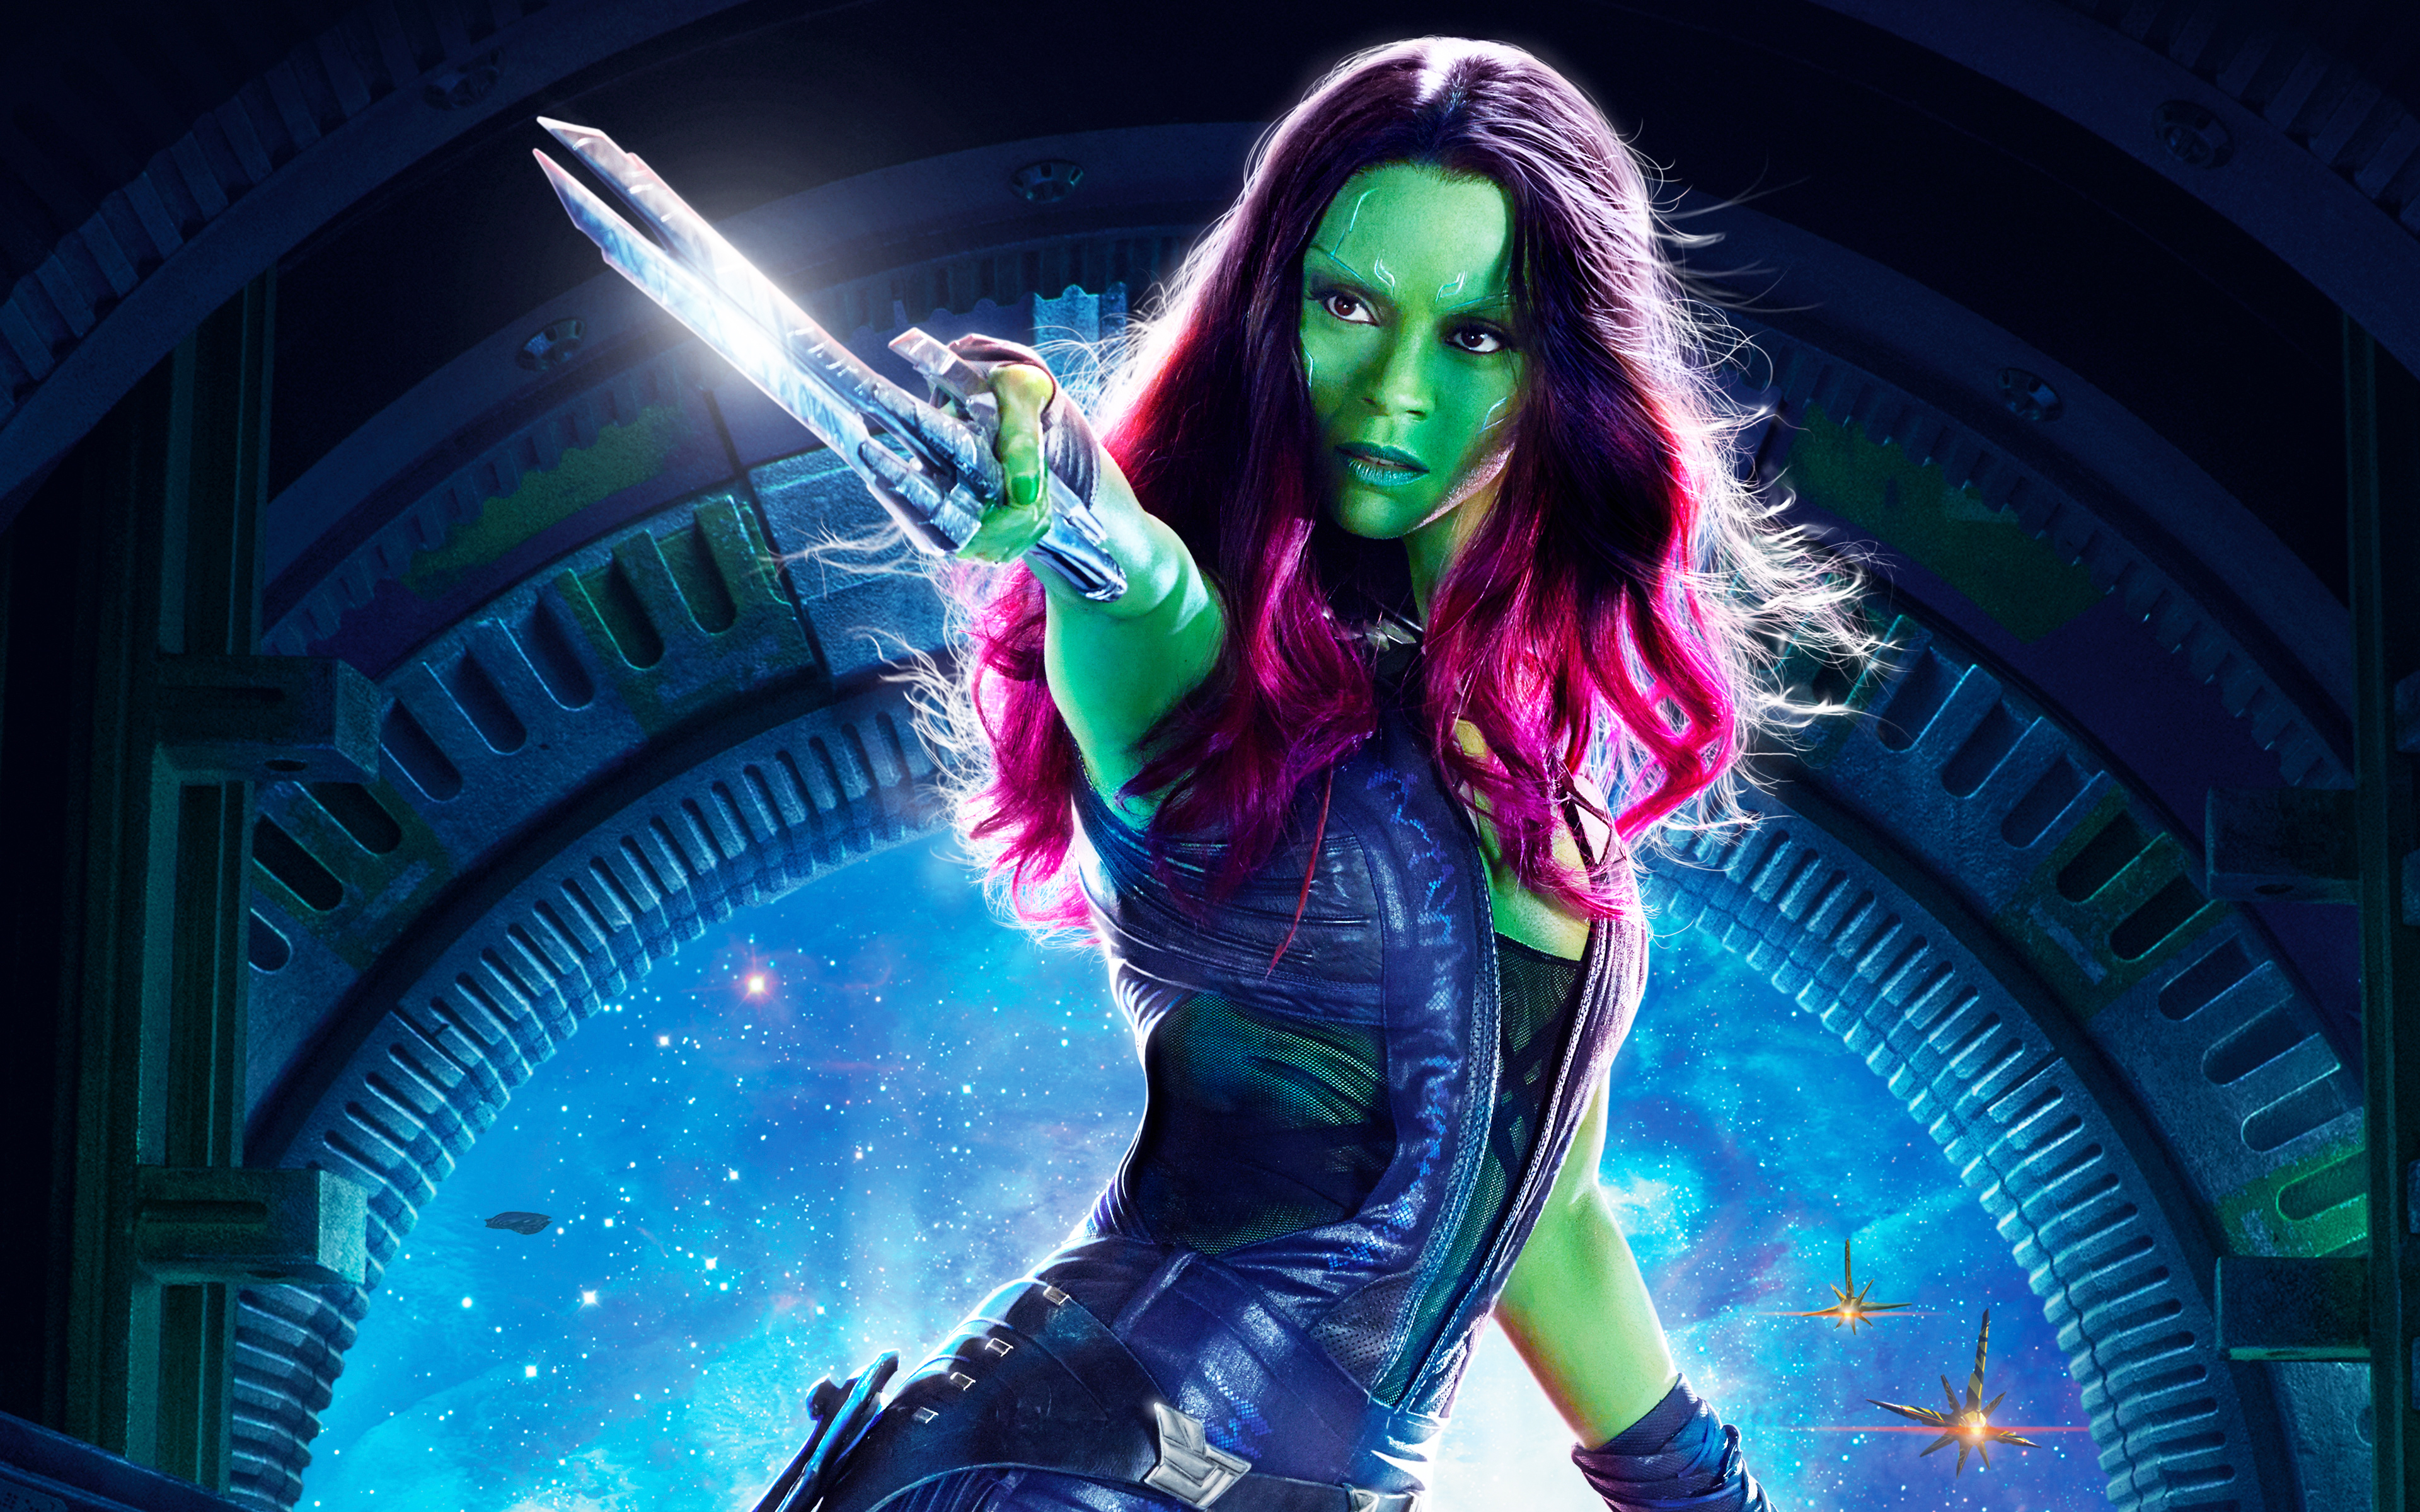 Gamora Guardians Of The Galaxy Vol 2 Wallpaper Full Hd Pictures